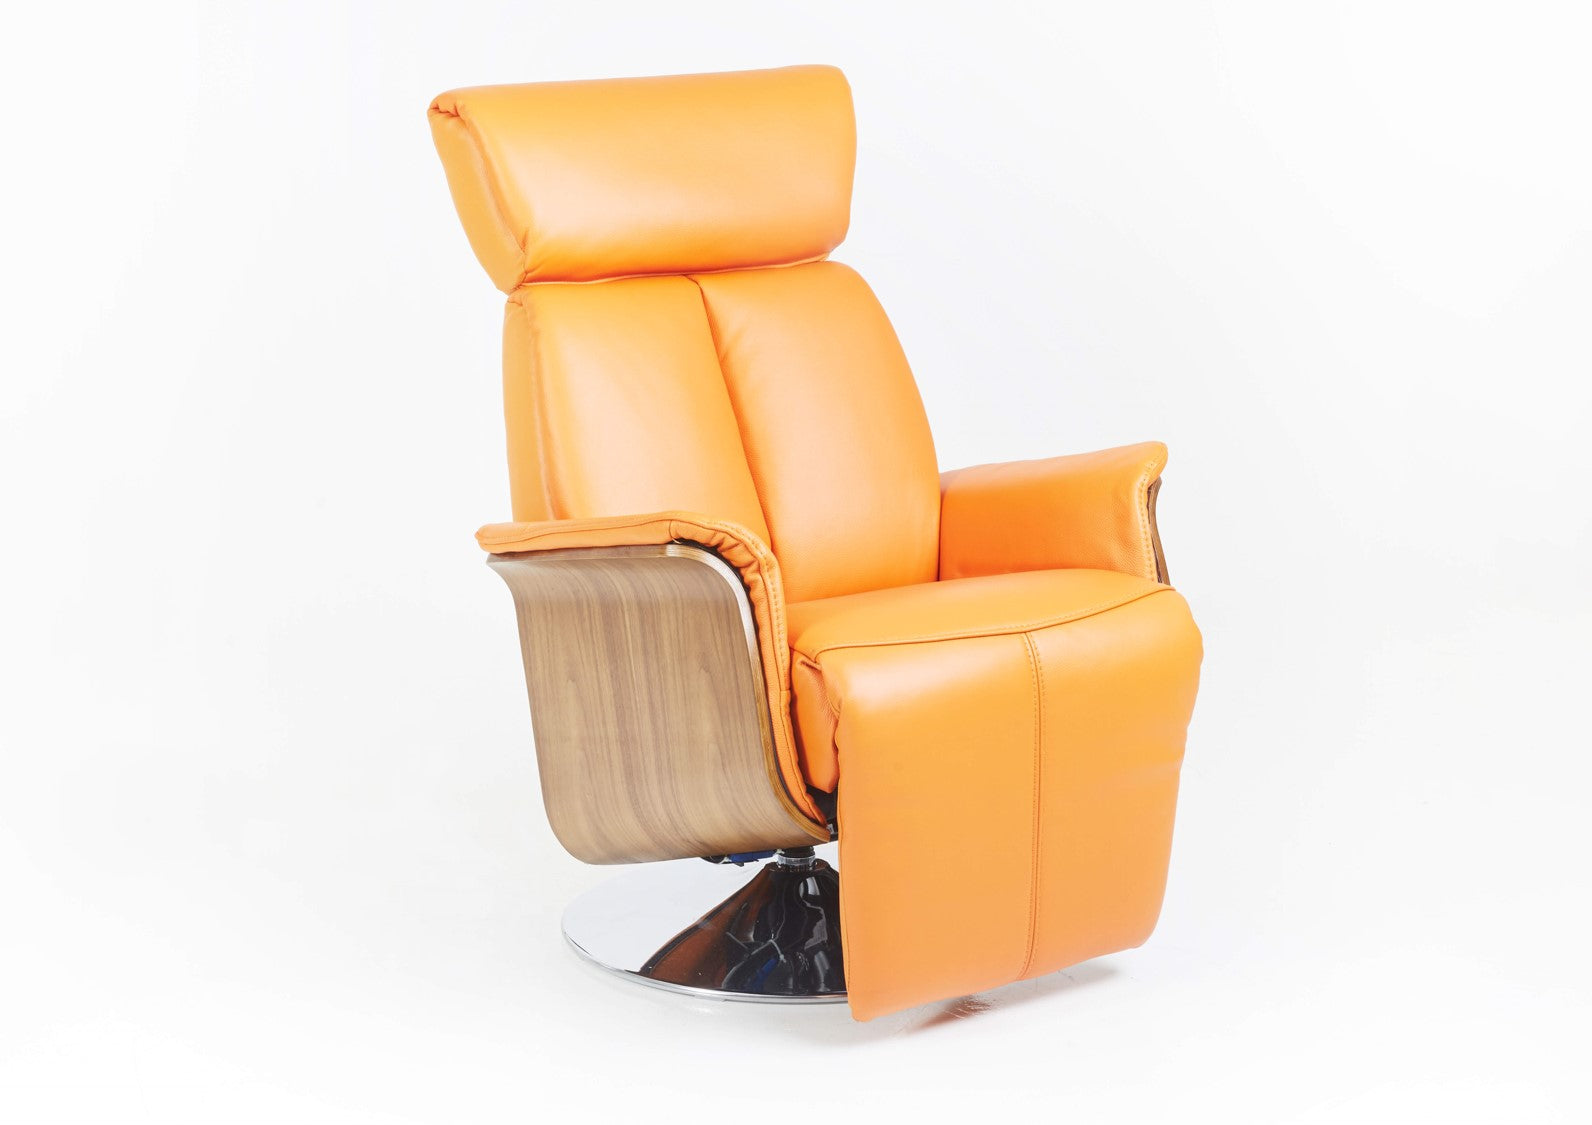 Atrani Power Leather Recliner Armchair More Than Just A Sofa